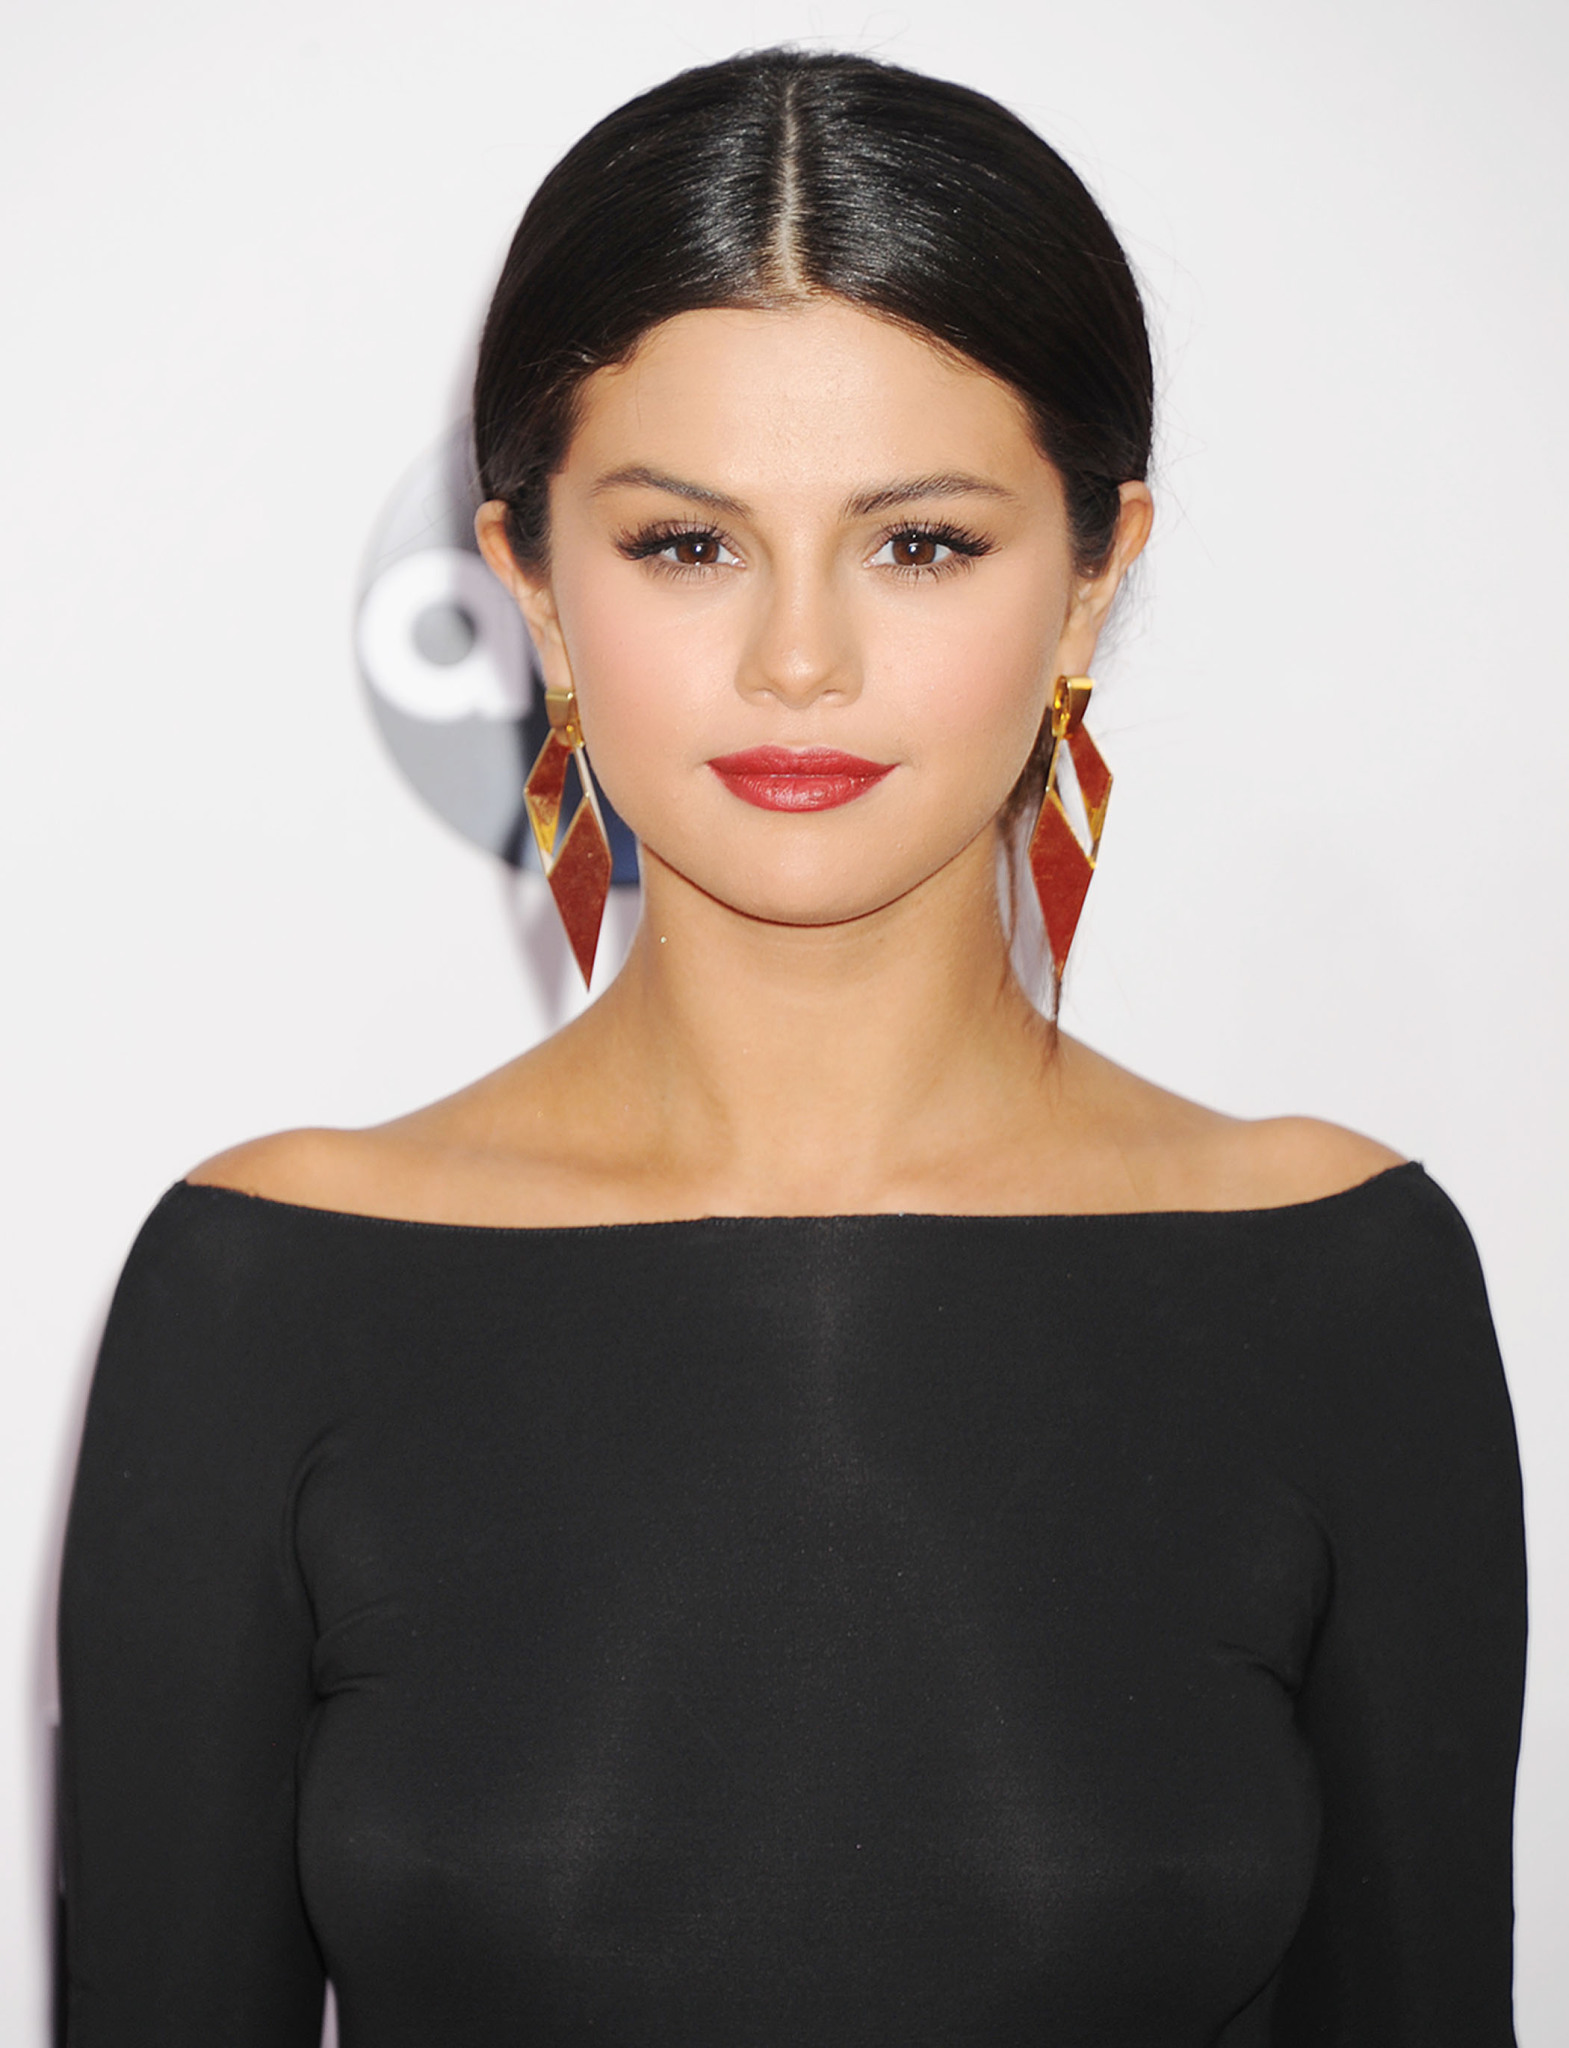 selena-gomez-braless-slight-see-through-at-the-amas-75473a66d2c156.jpg